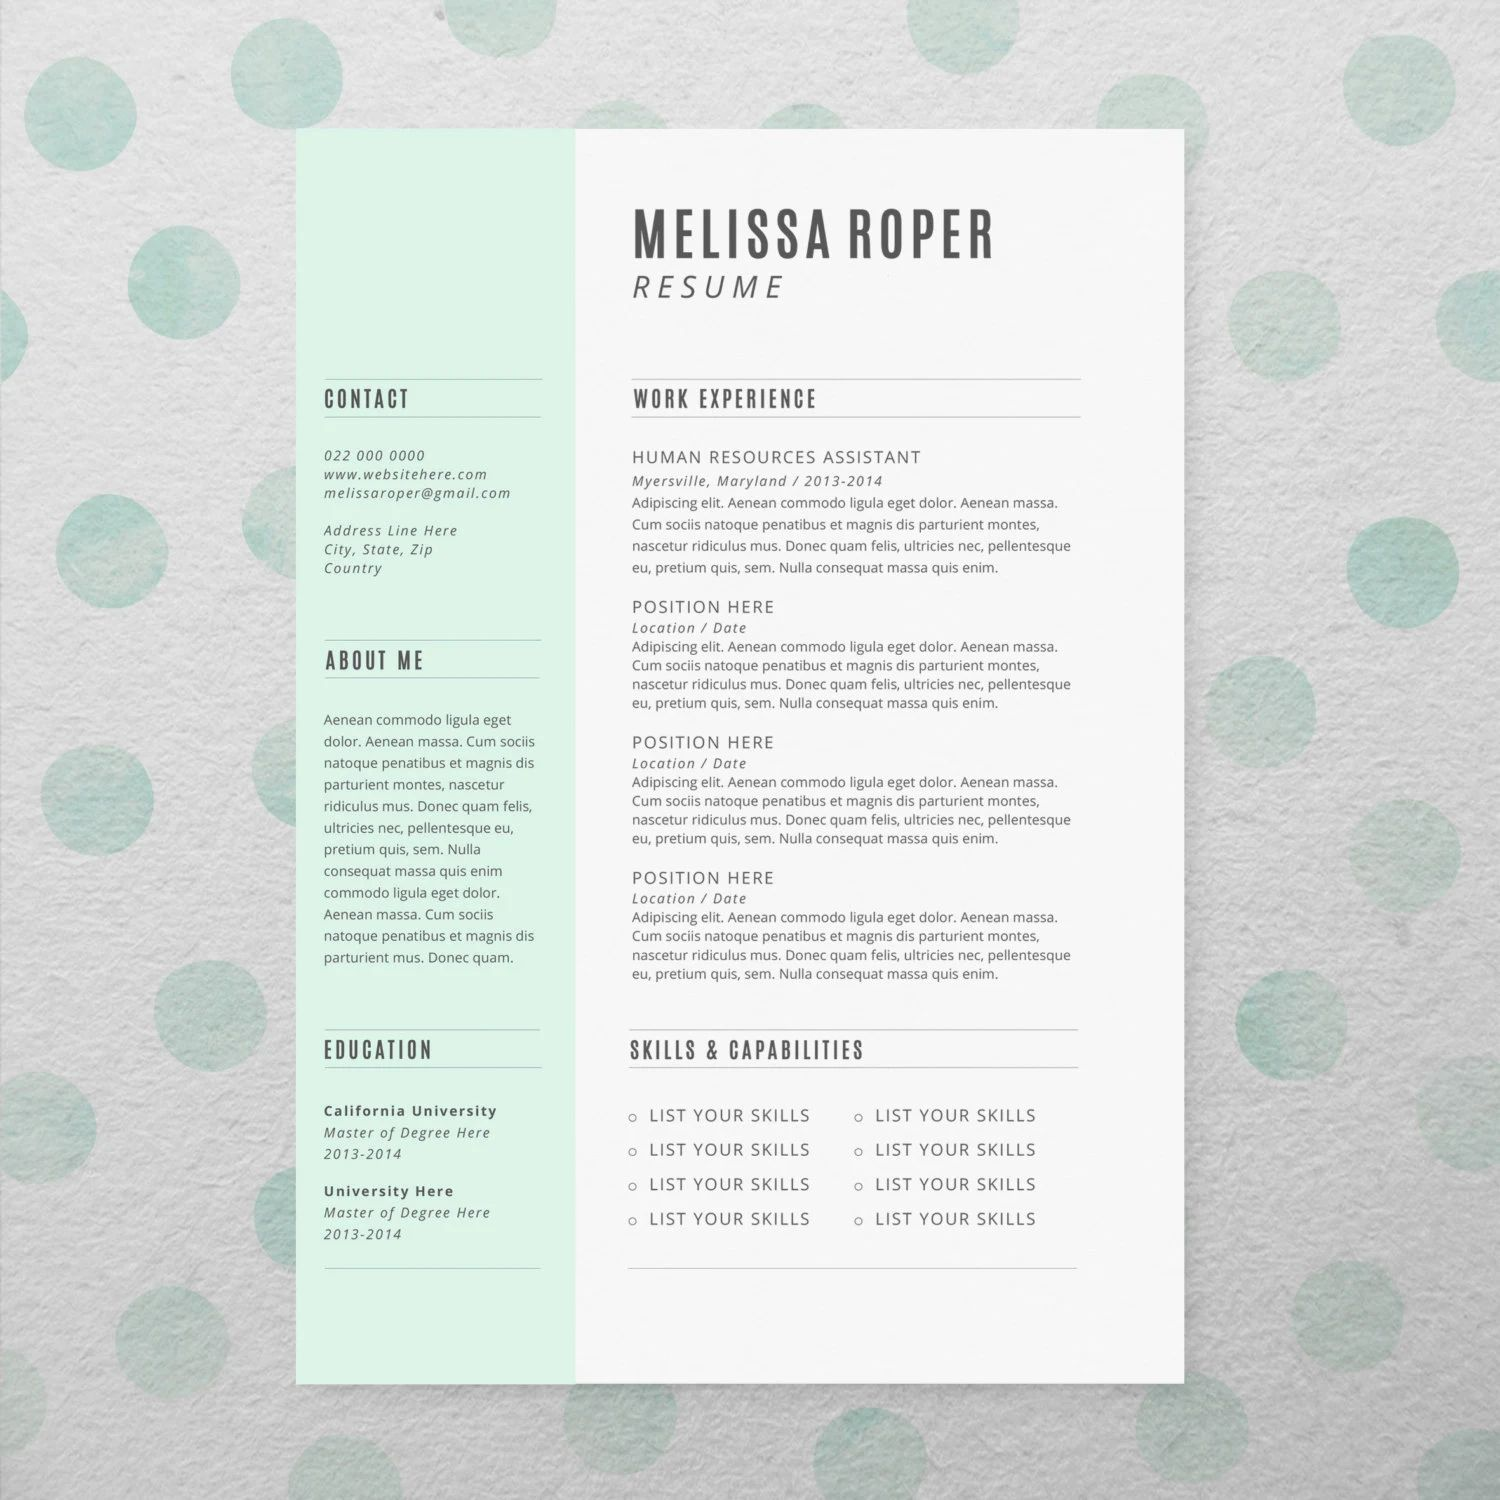 faire un cv design gratuit sans photoshop